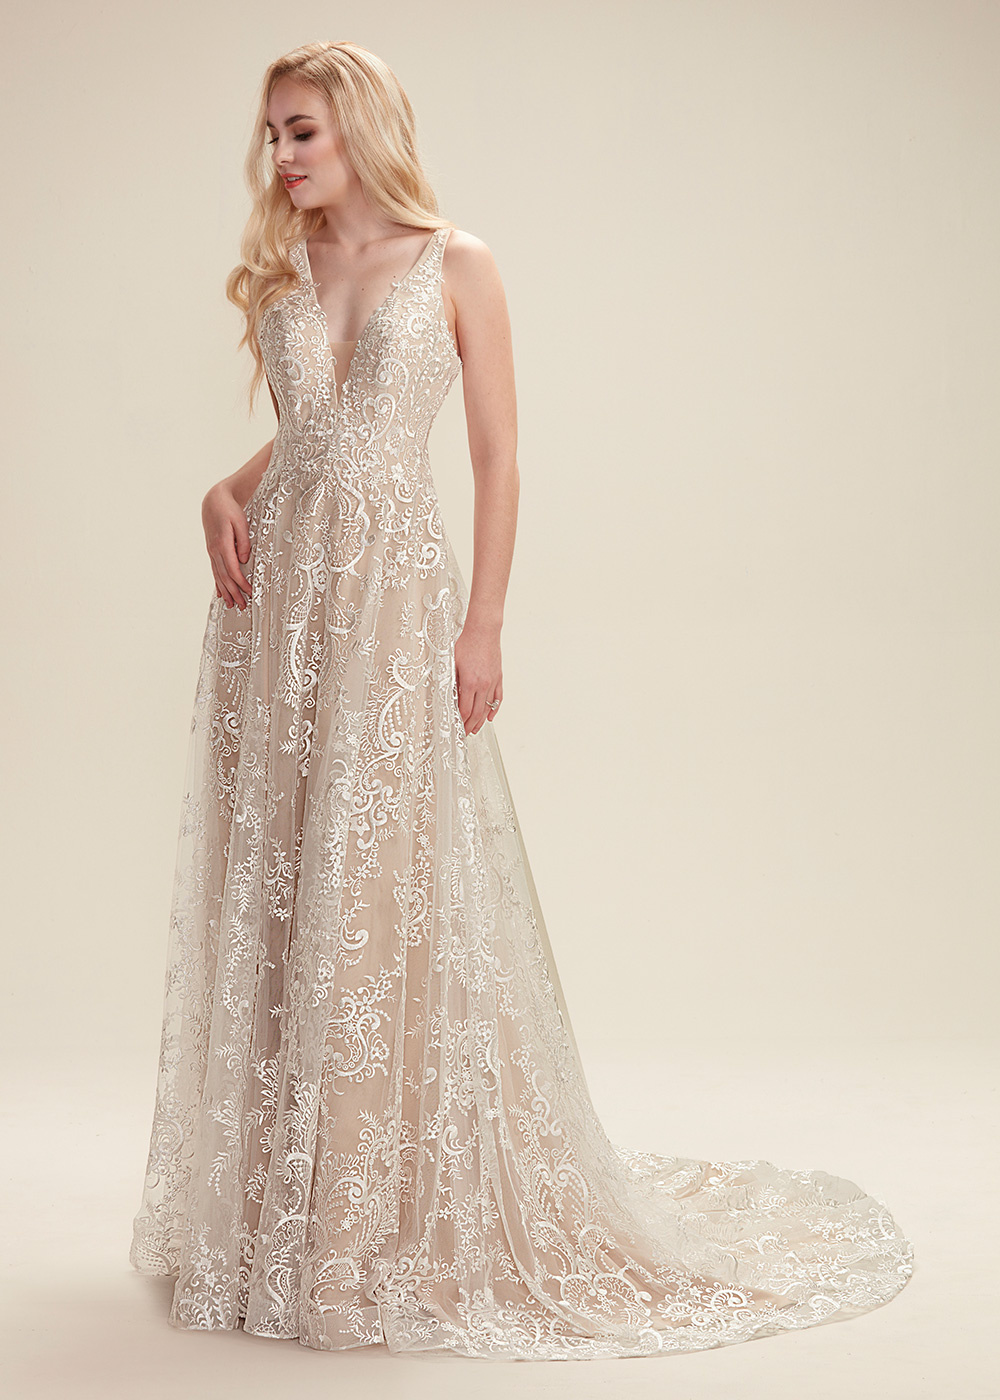 TH-Eden TH Wedding Dresses By Ashdon